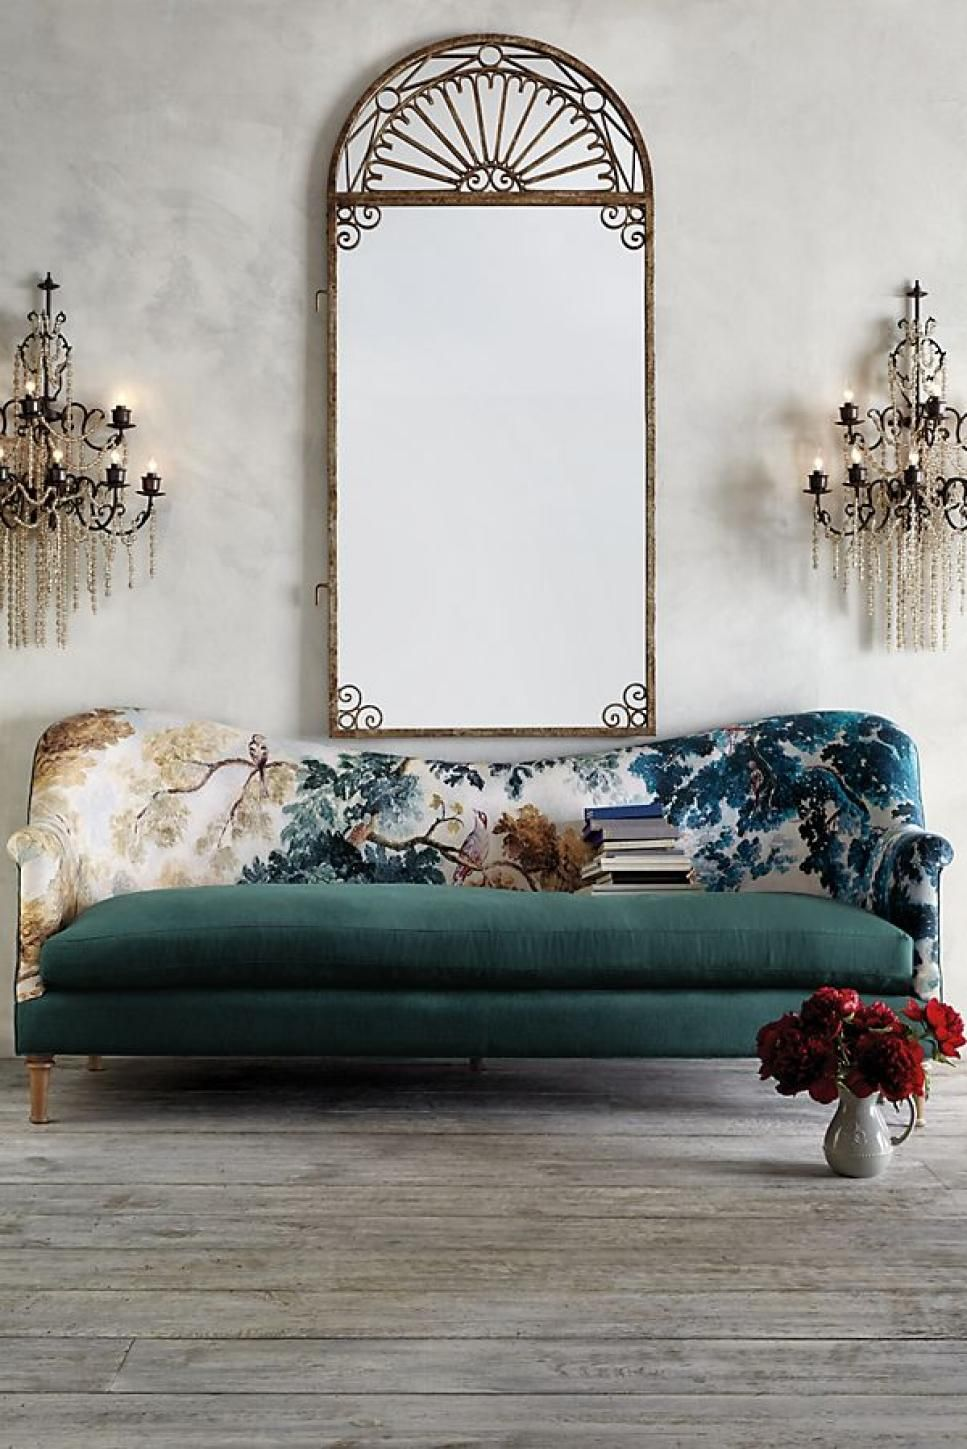 trade up to one of these 15 stylish sofas home pinterest home rh pinterest com